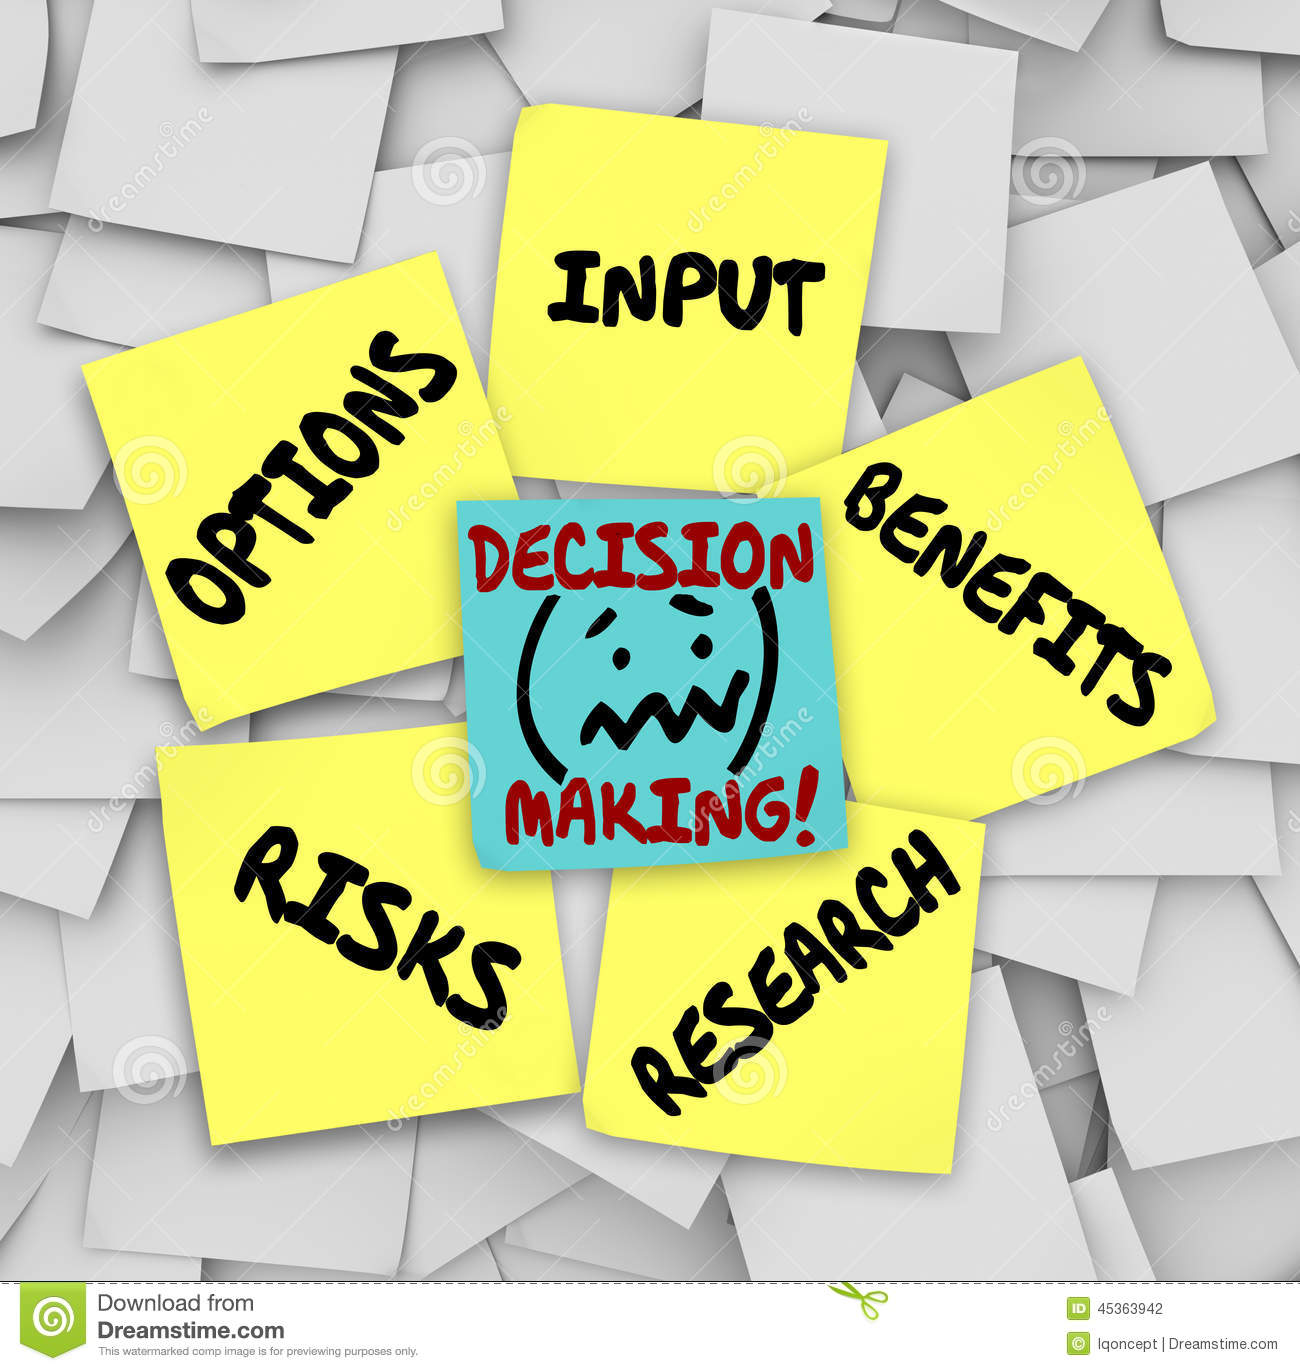 Decision Making Clipart.